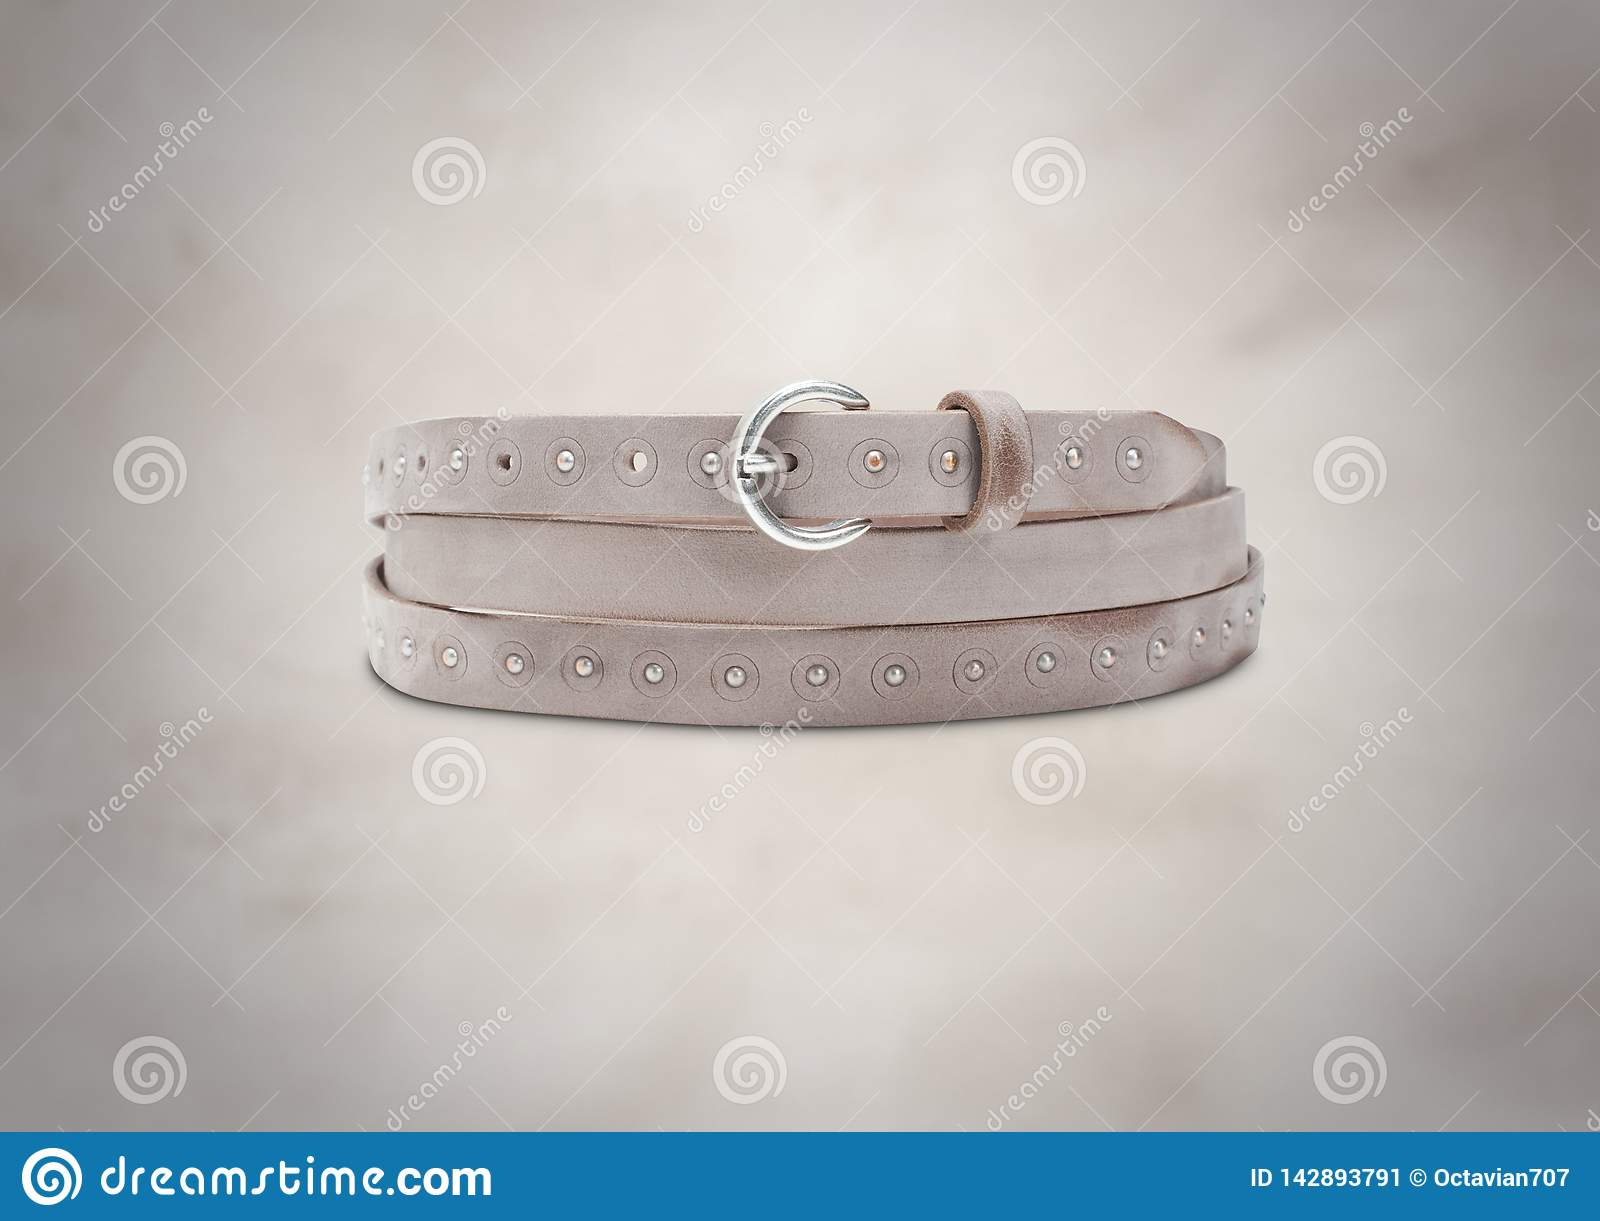 Light brown suede leather belt on beautiful background